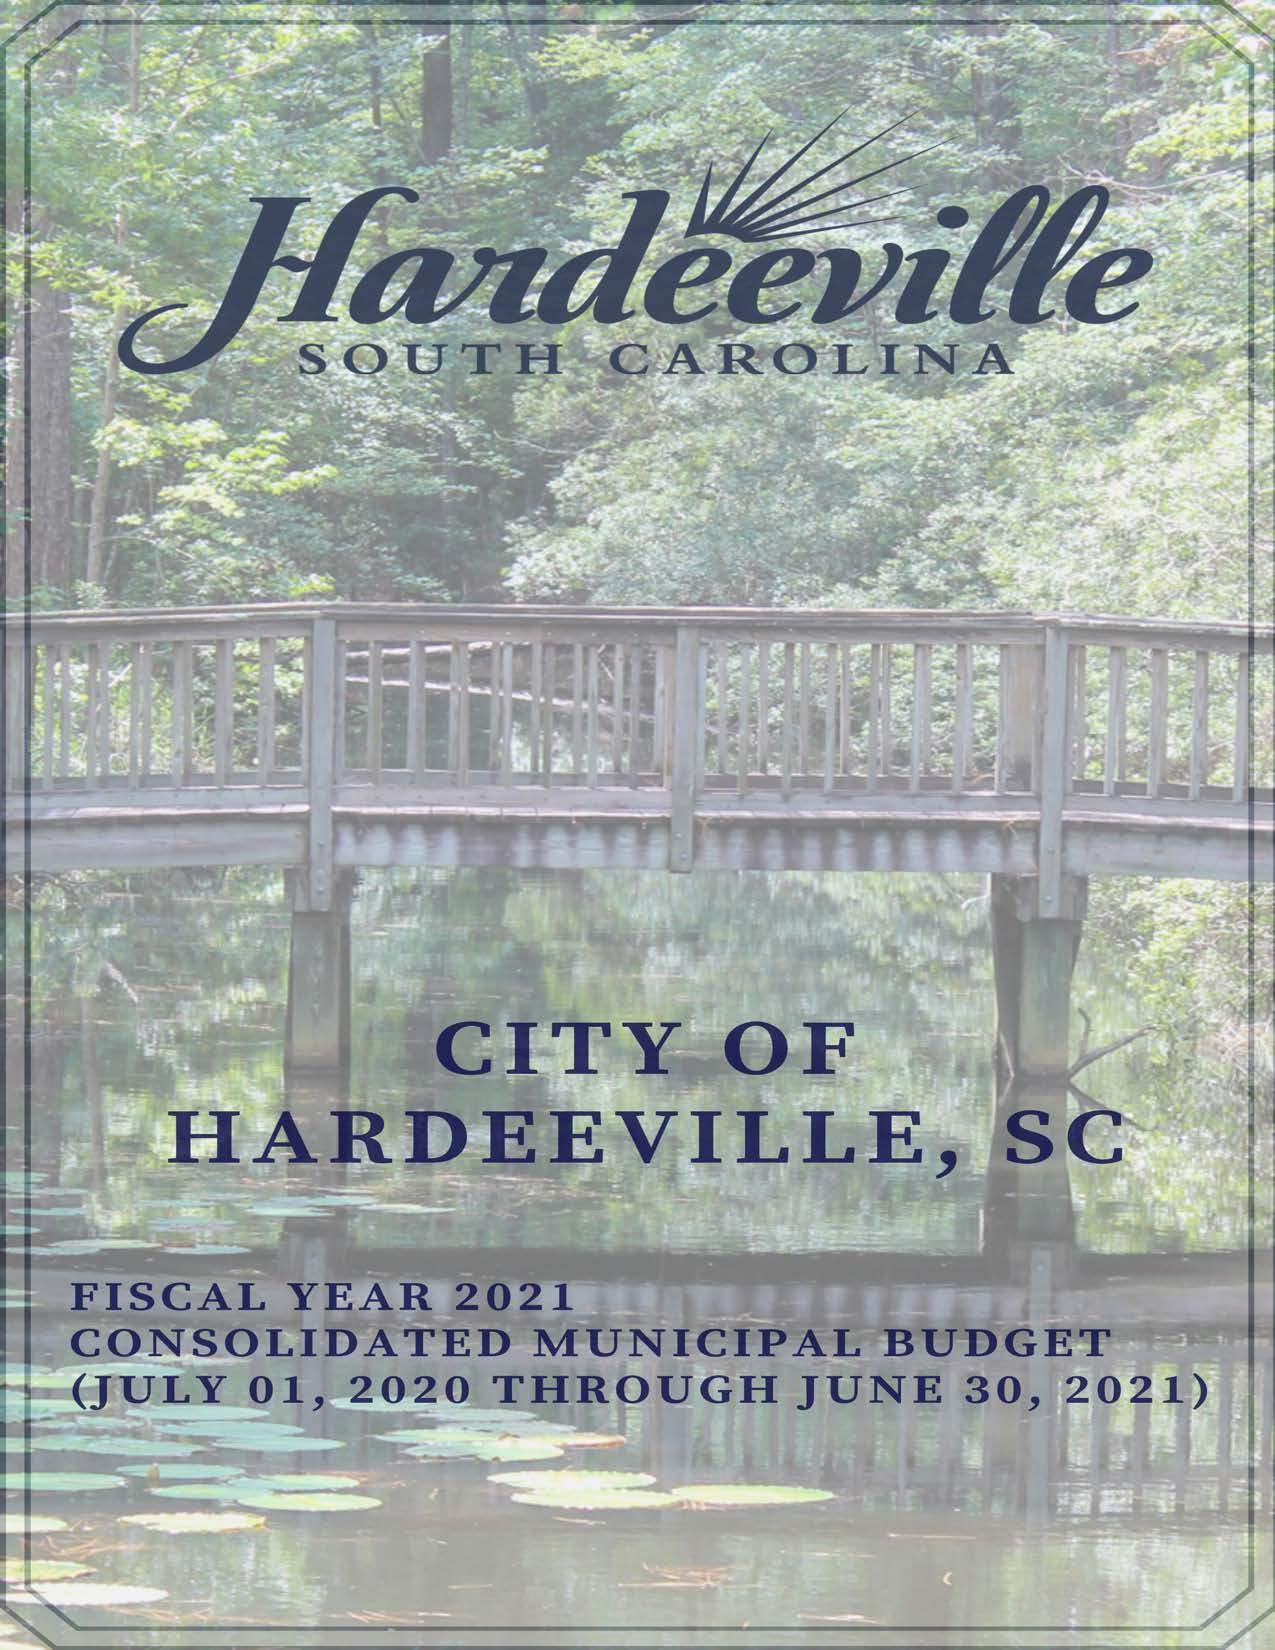 City of Hardeeville Consolidated Municipal Budget